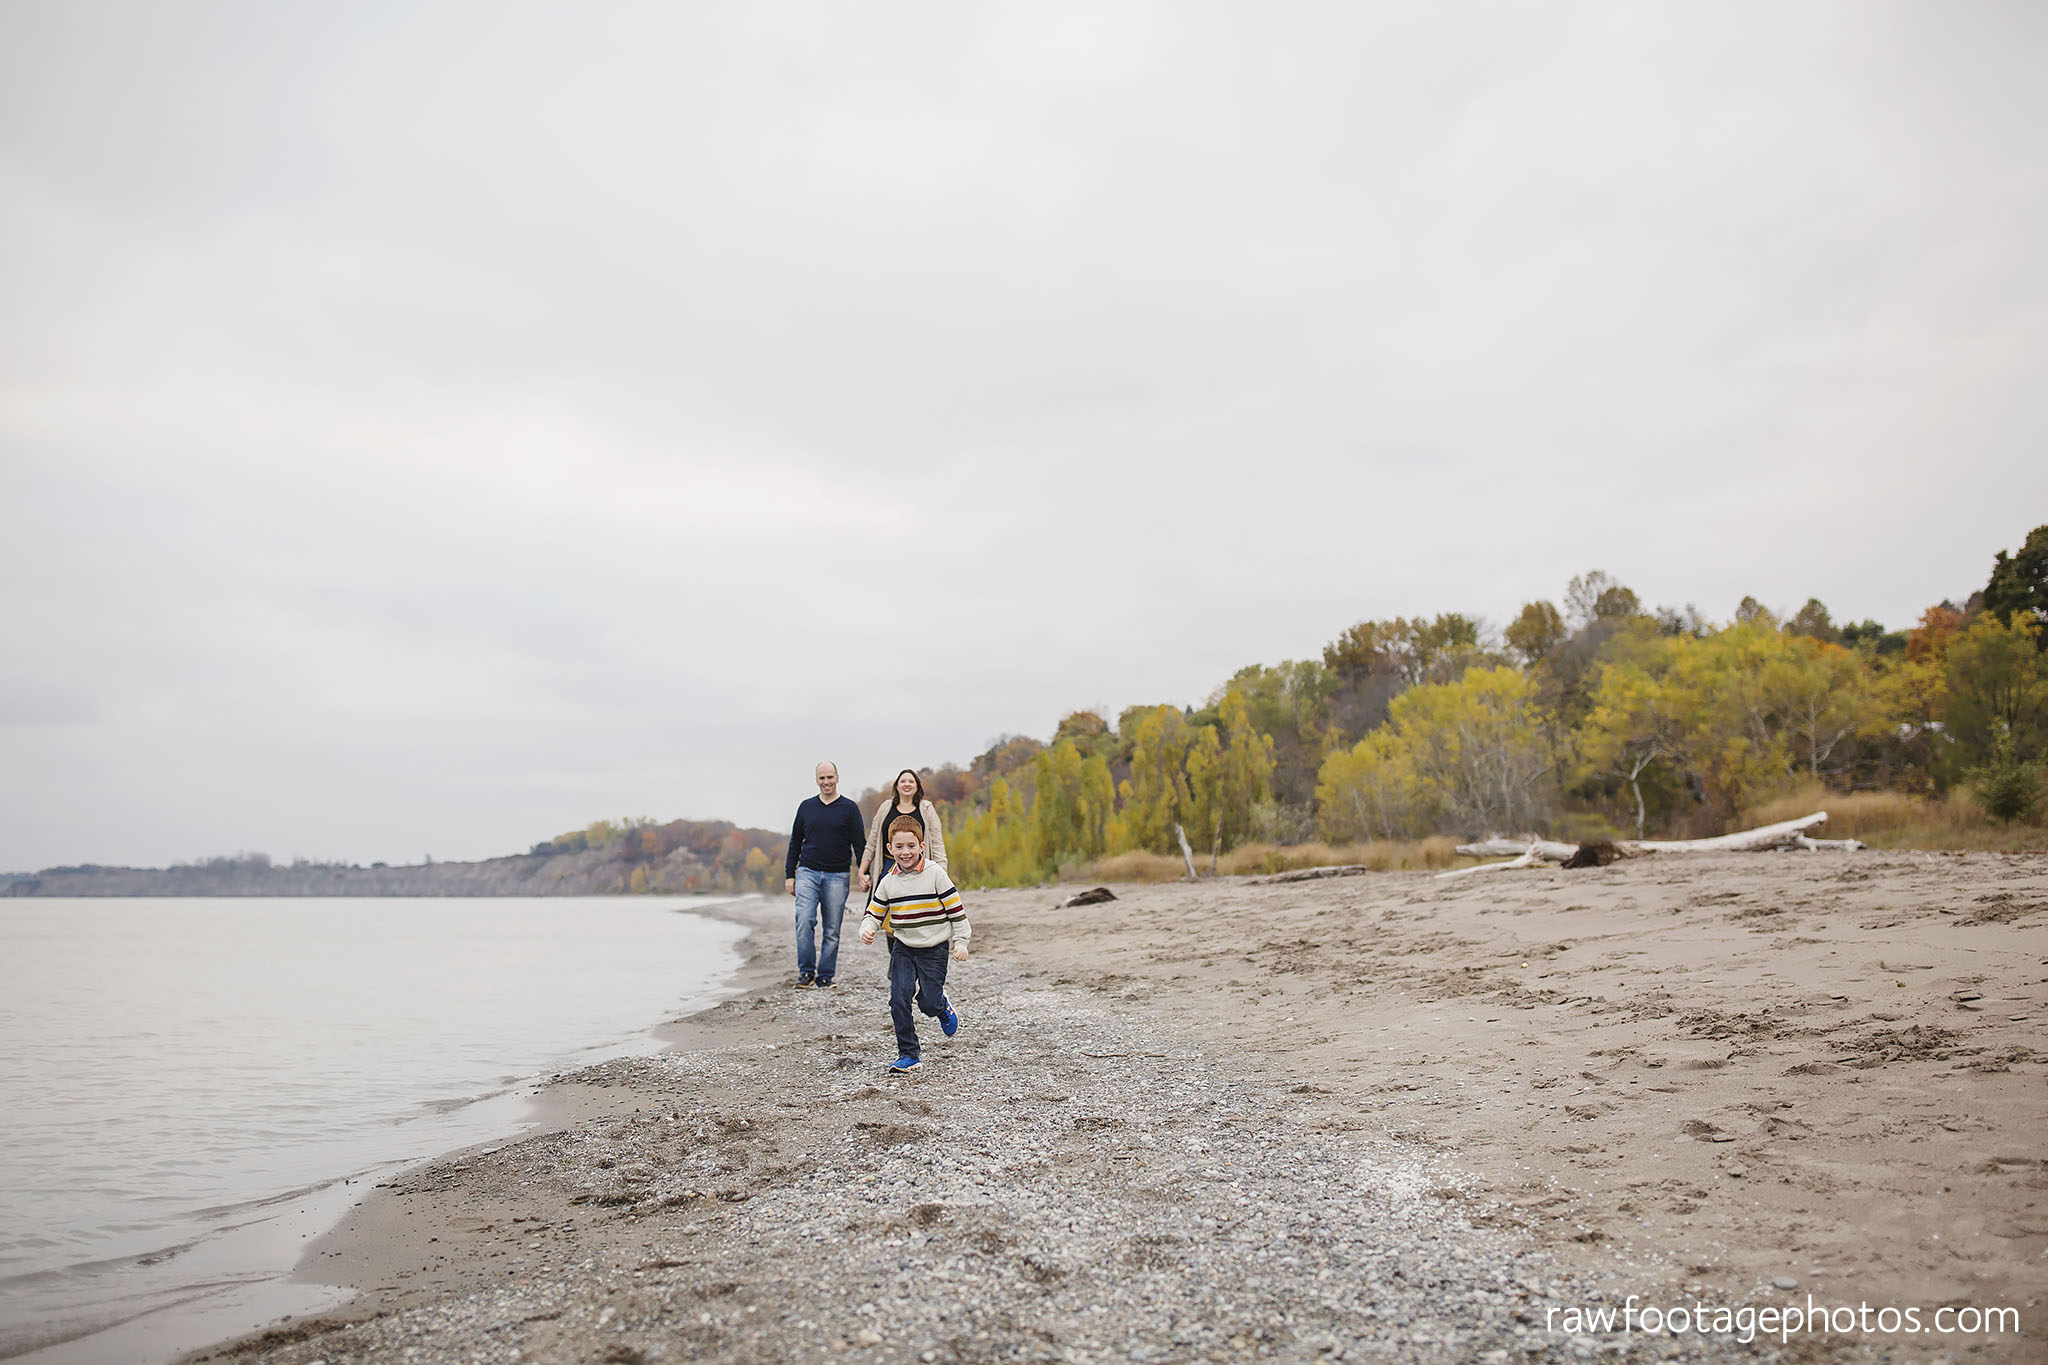 london_ontario_family_photographer-port_stanley_photography-raw_footage_photography-family_photos-beach_photos-fall_family_photos-lifestyle_family_photography-candid_photographer012.jpg